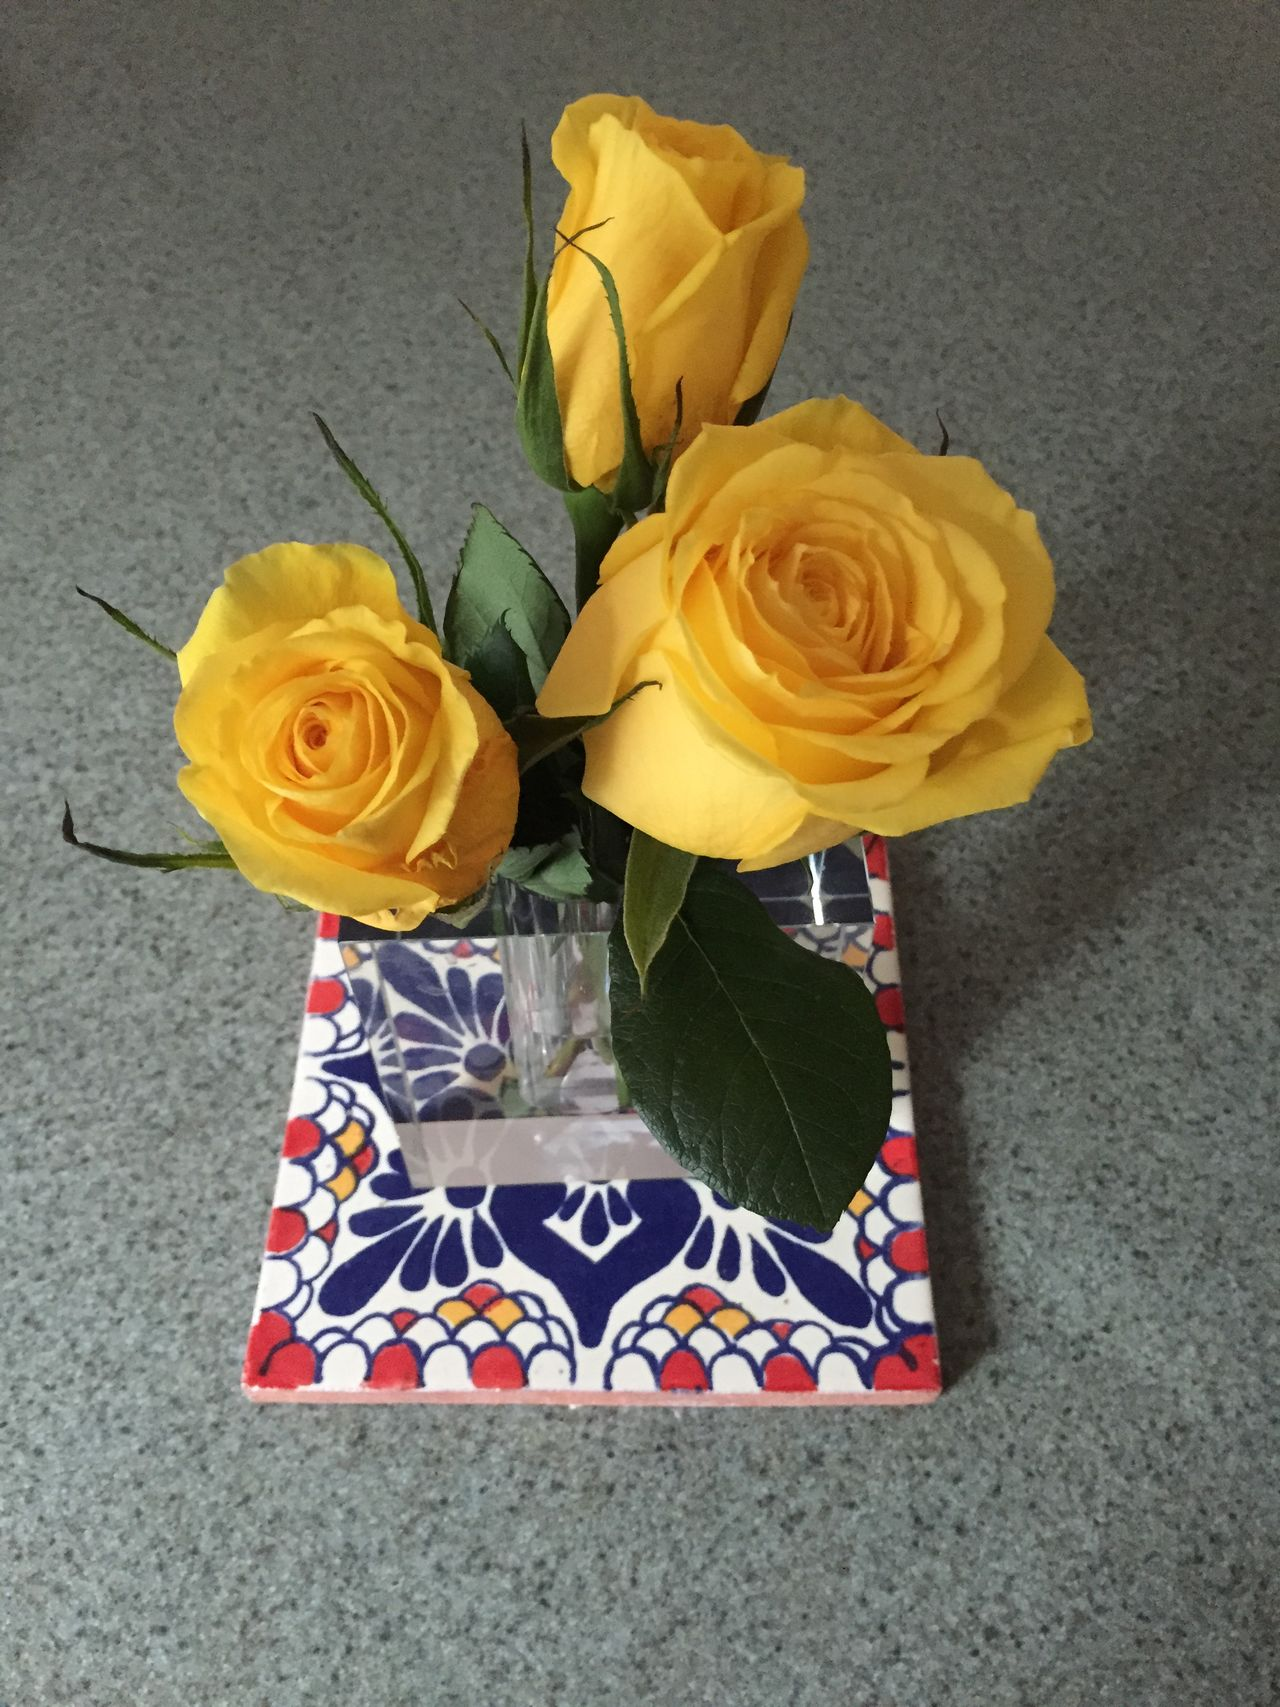 Close-up Flower Gift High Angle View Petal Vase Yellow